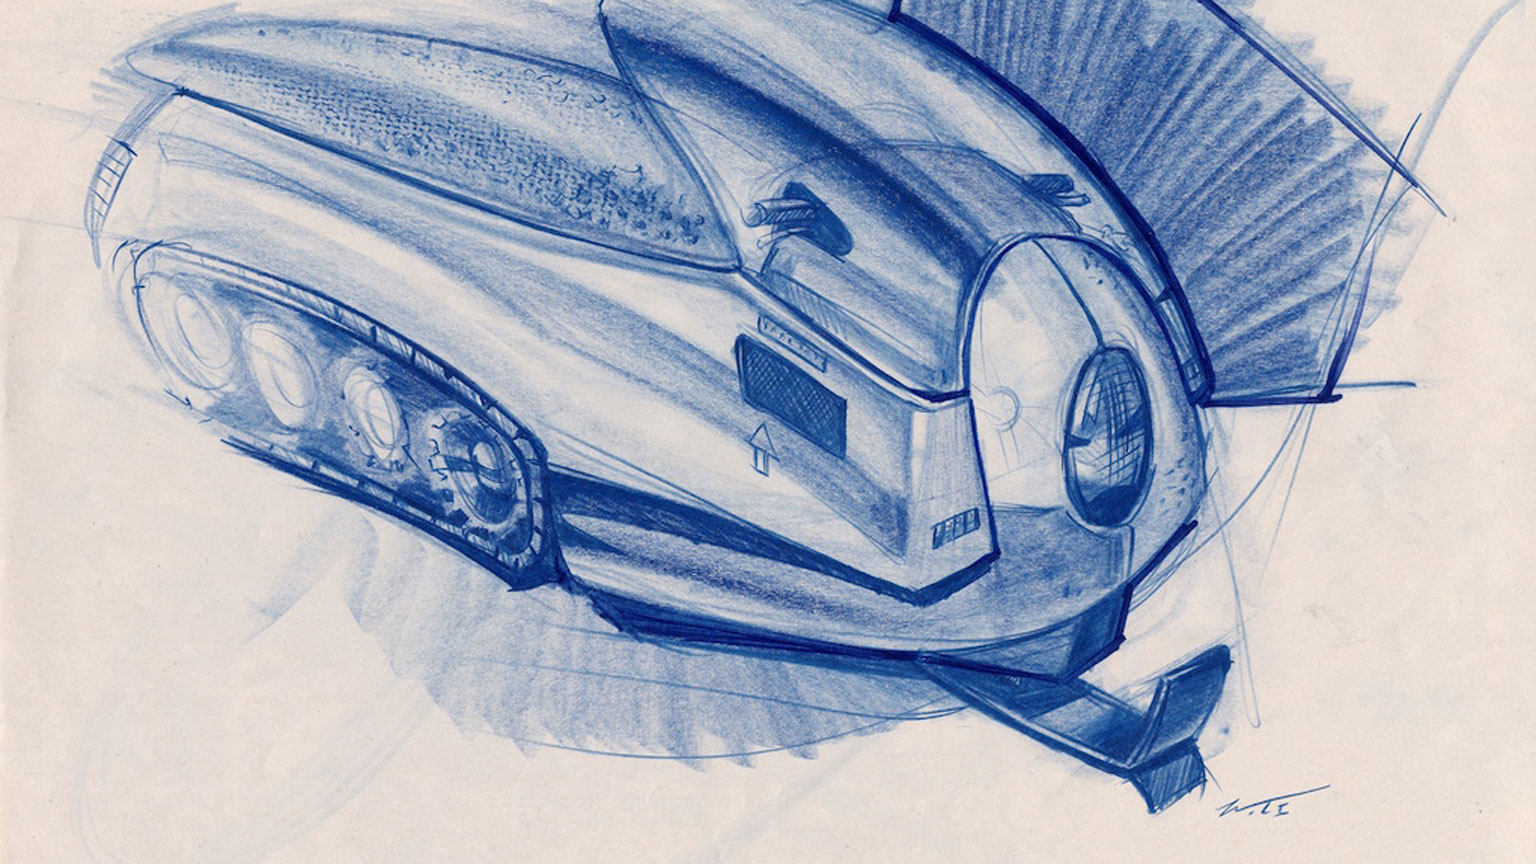 A hand-sketched rendering depicts a concept-vehicle, created for Design Bloc's interdisciplinary capstone design course.